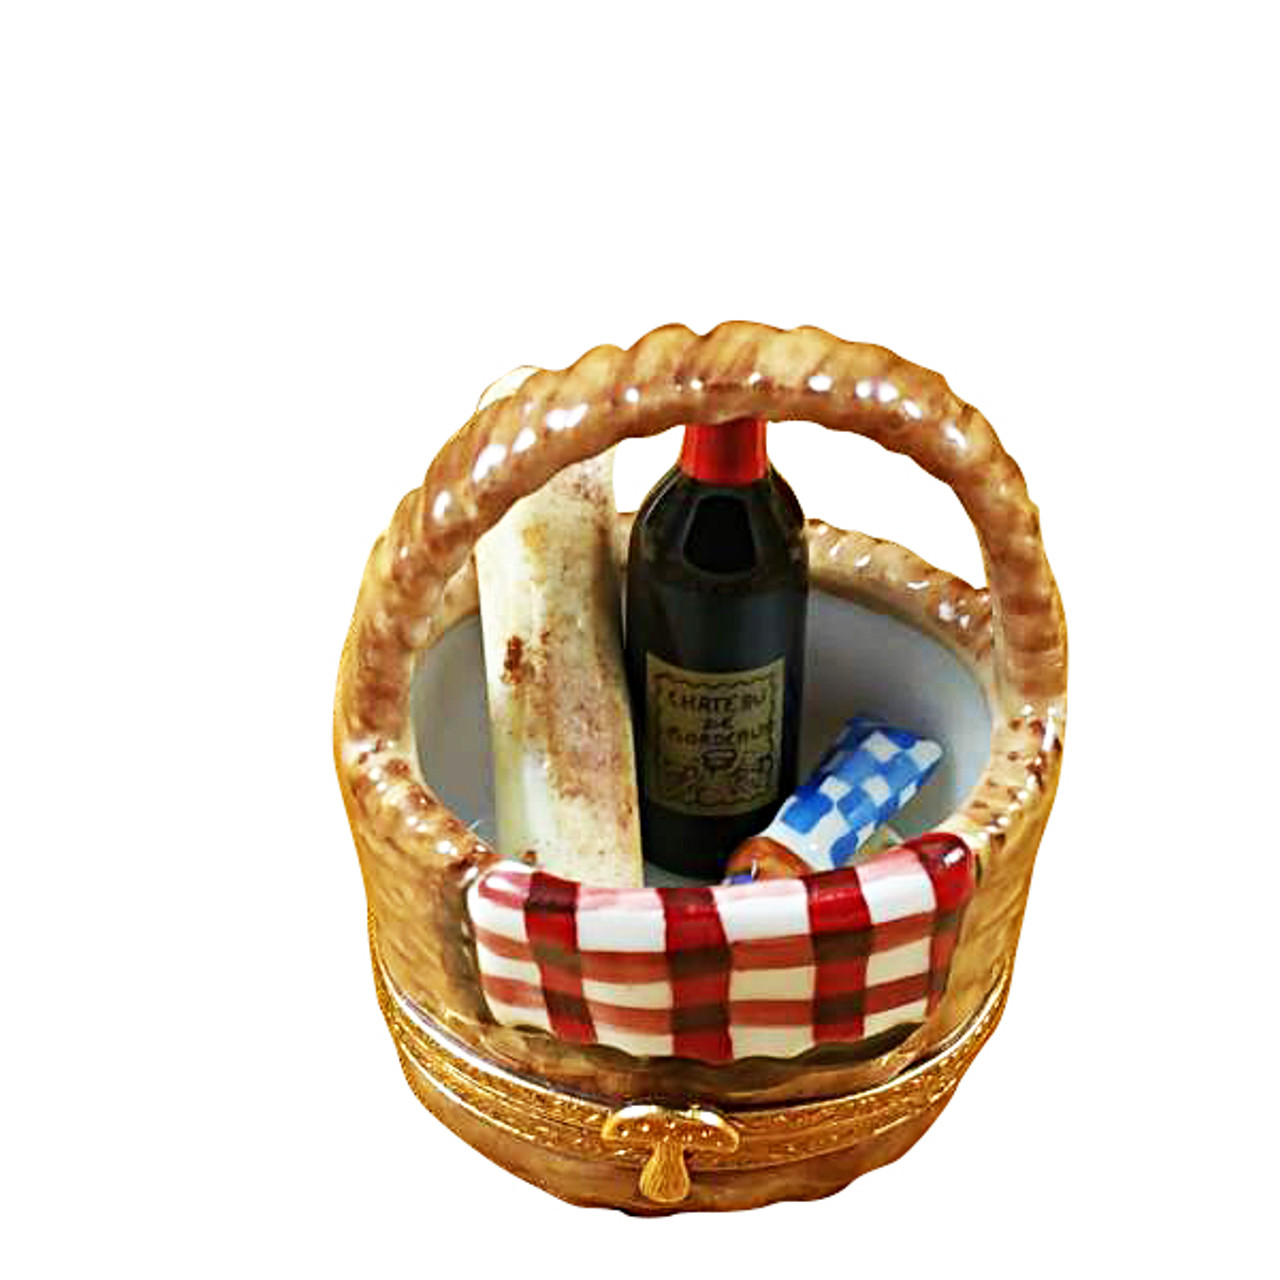 Picnic Basket W/Wine, Bread, Cheese & Napkin Rochard Limoges Box